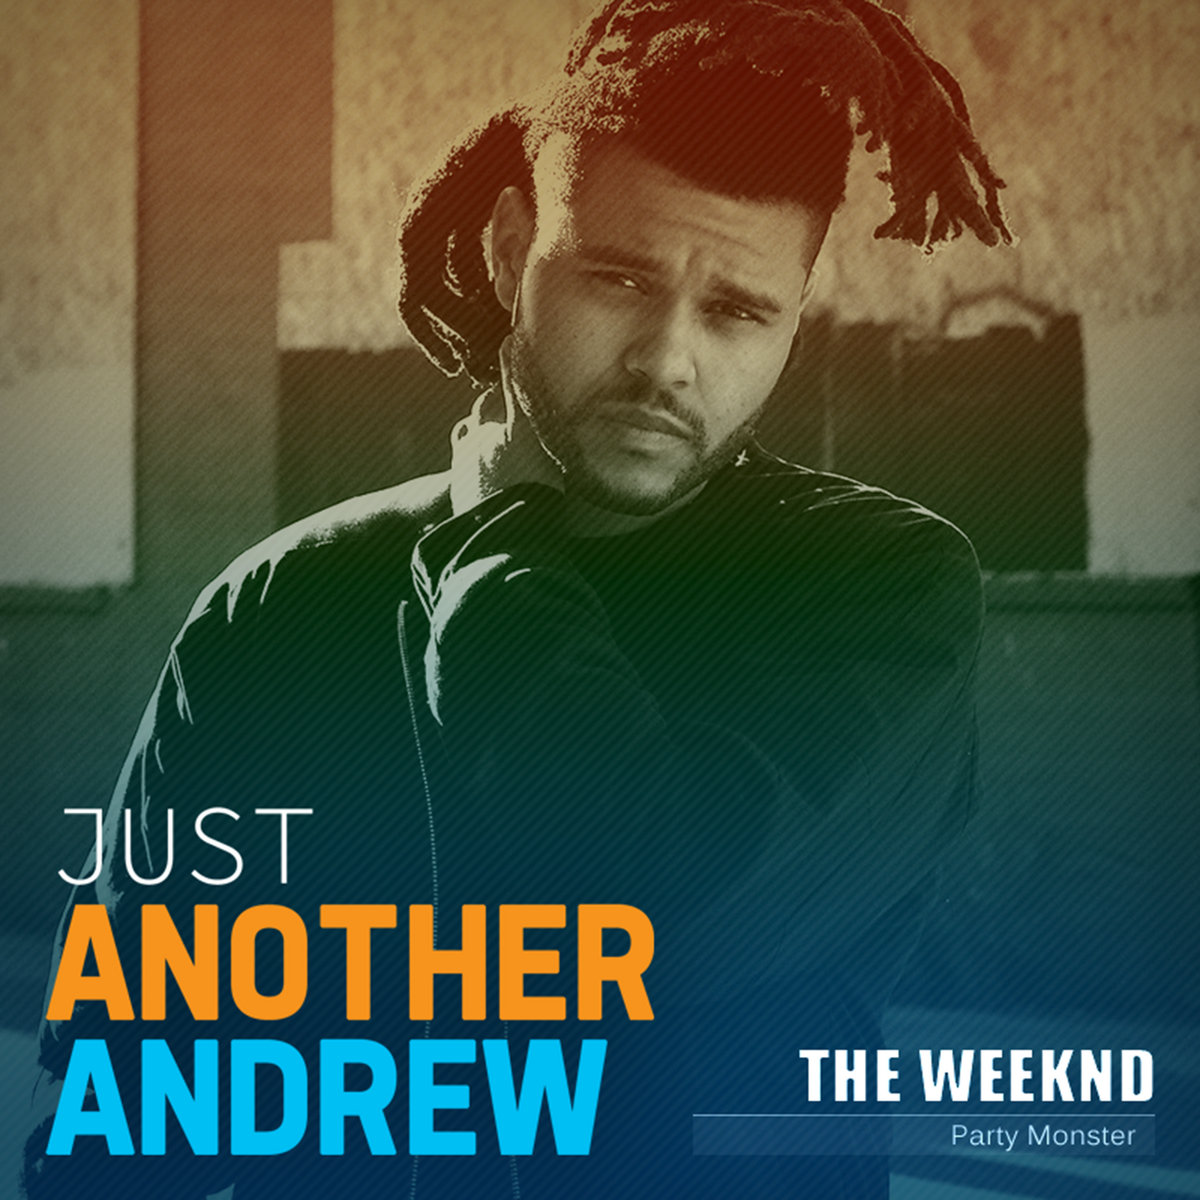 party monster the weeknd download free